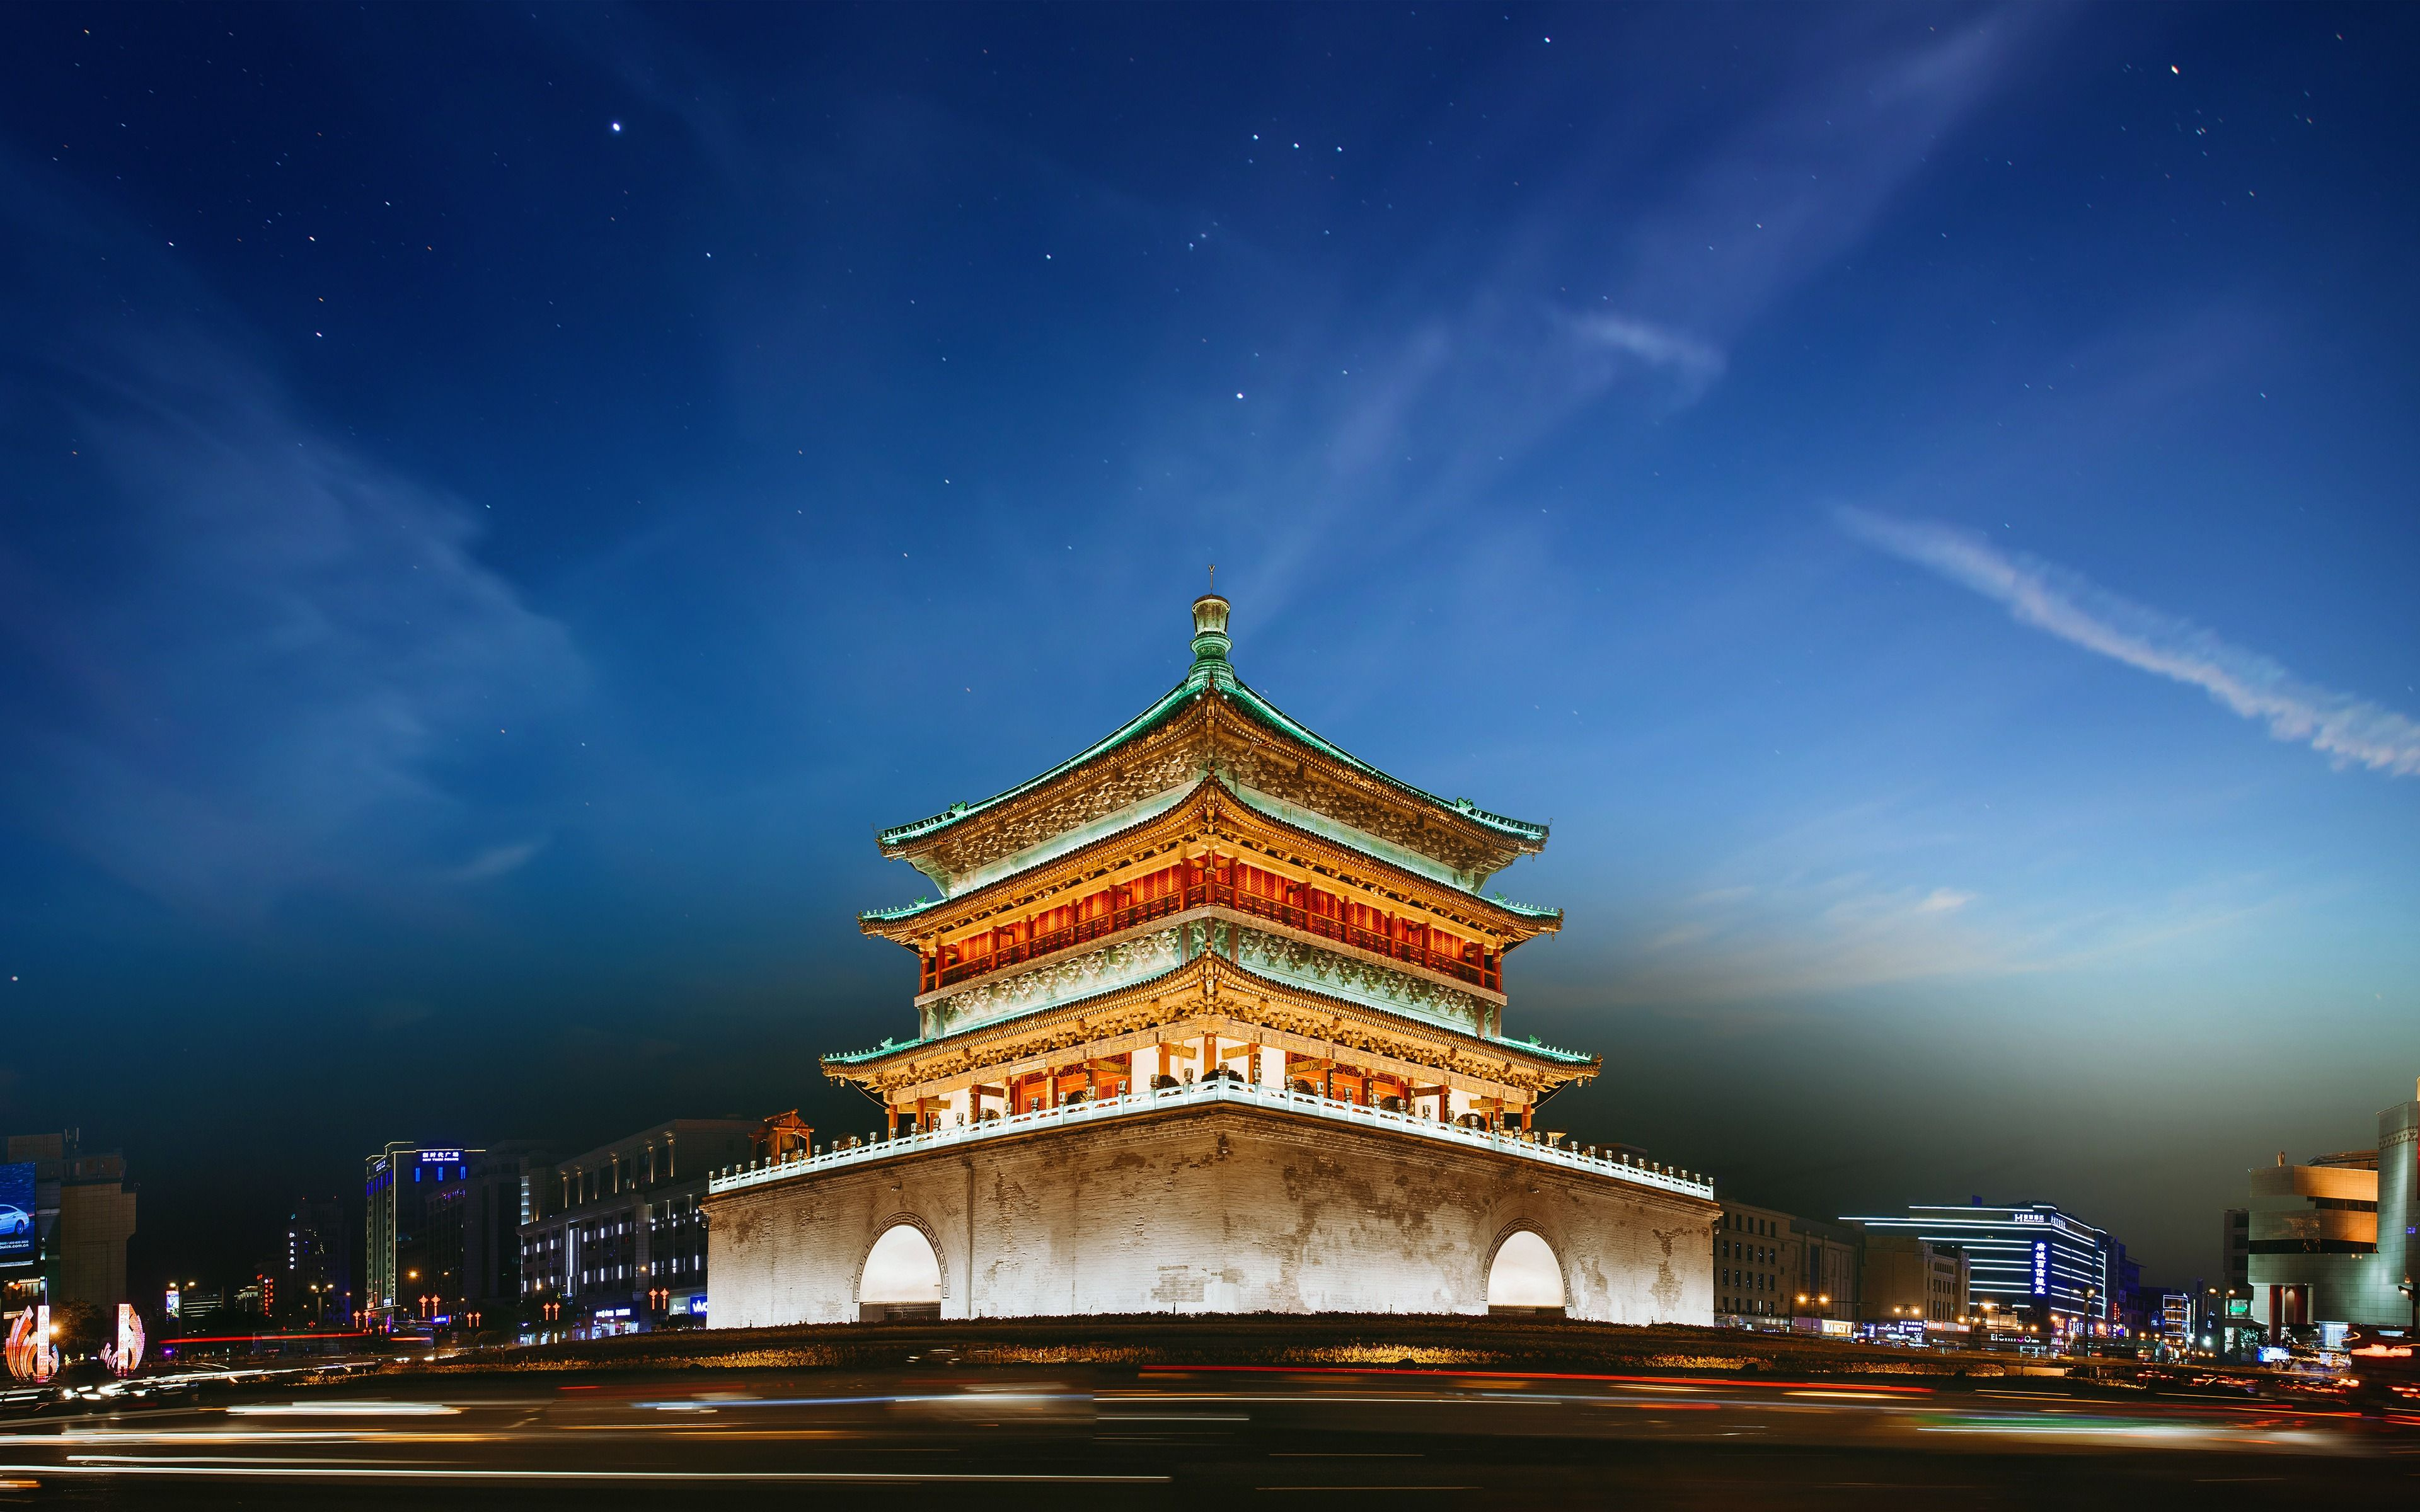 3840x2400 Download wallpapers Xian bell tower, 4k, chinese landmarks ...